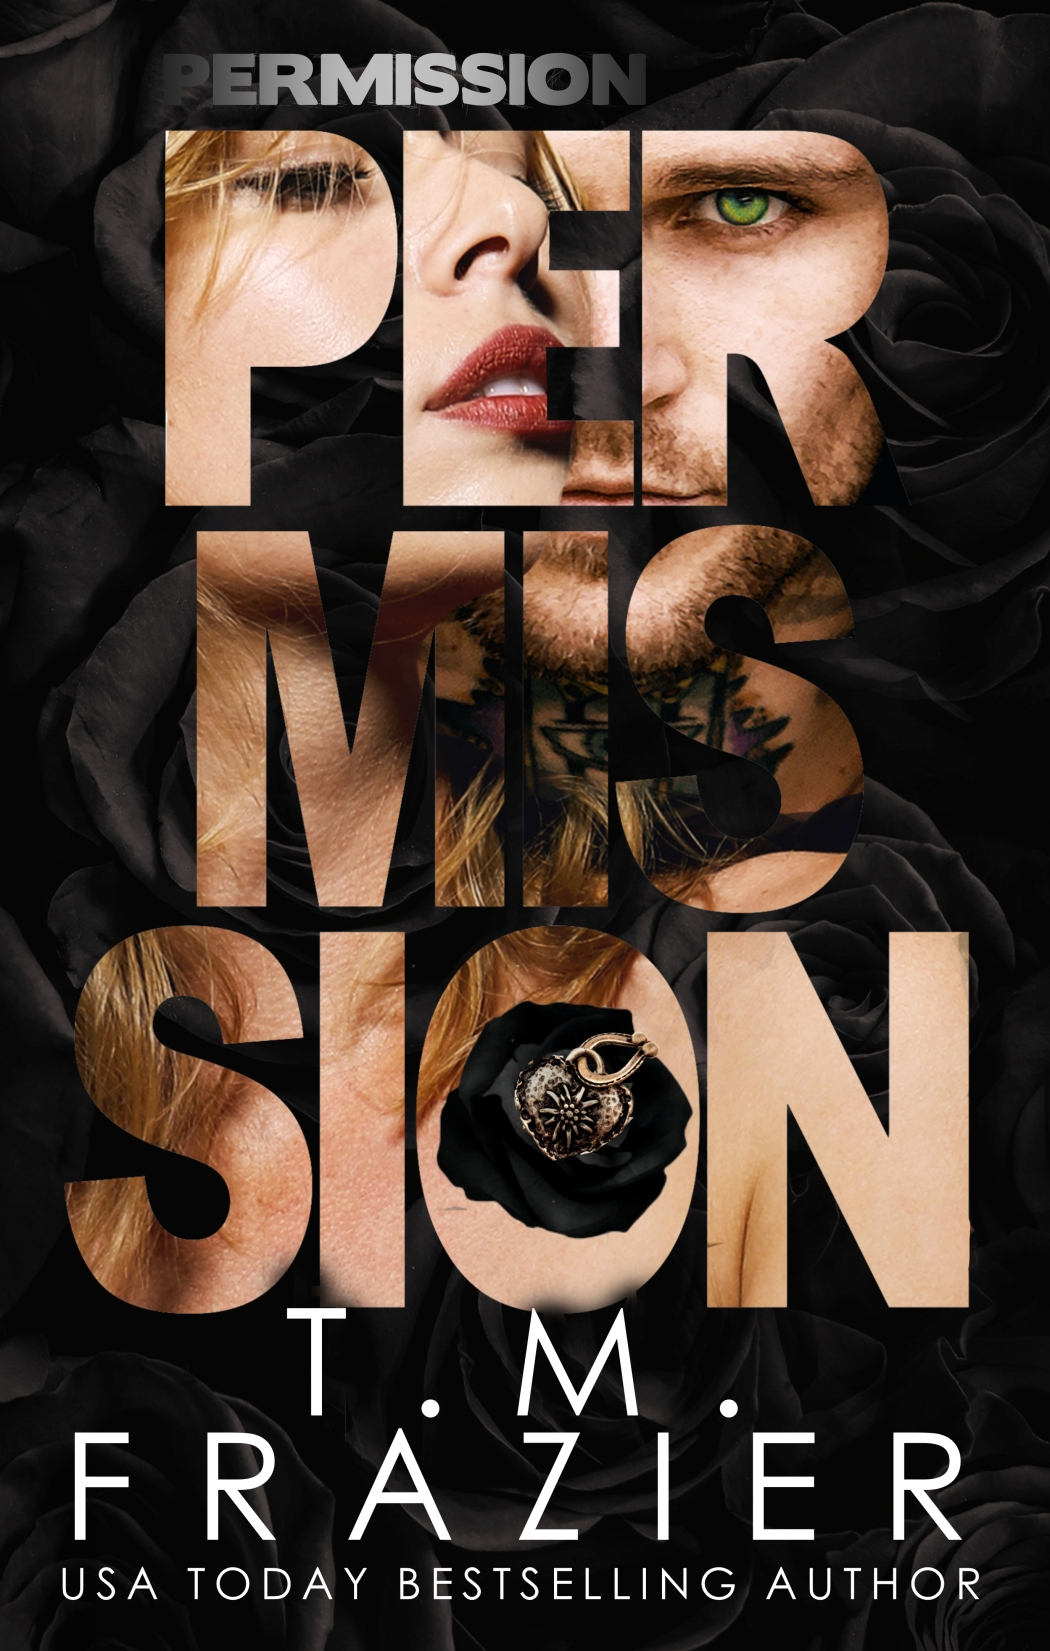 PERMISSION ebook FINAL JPG